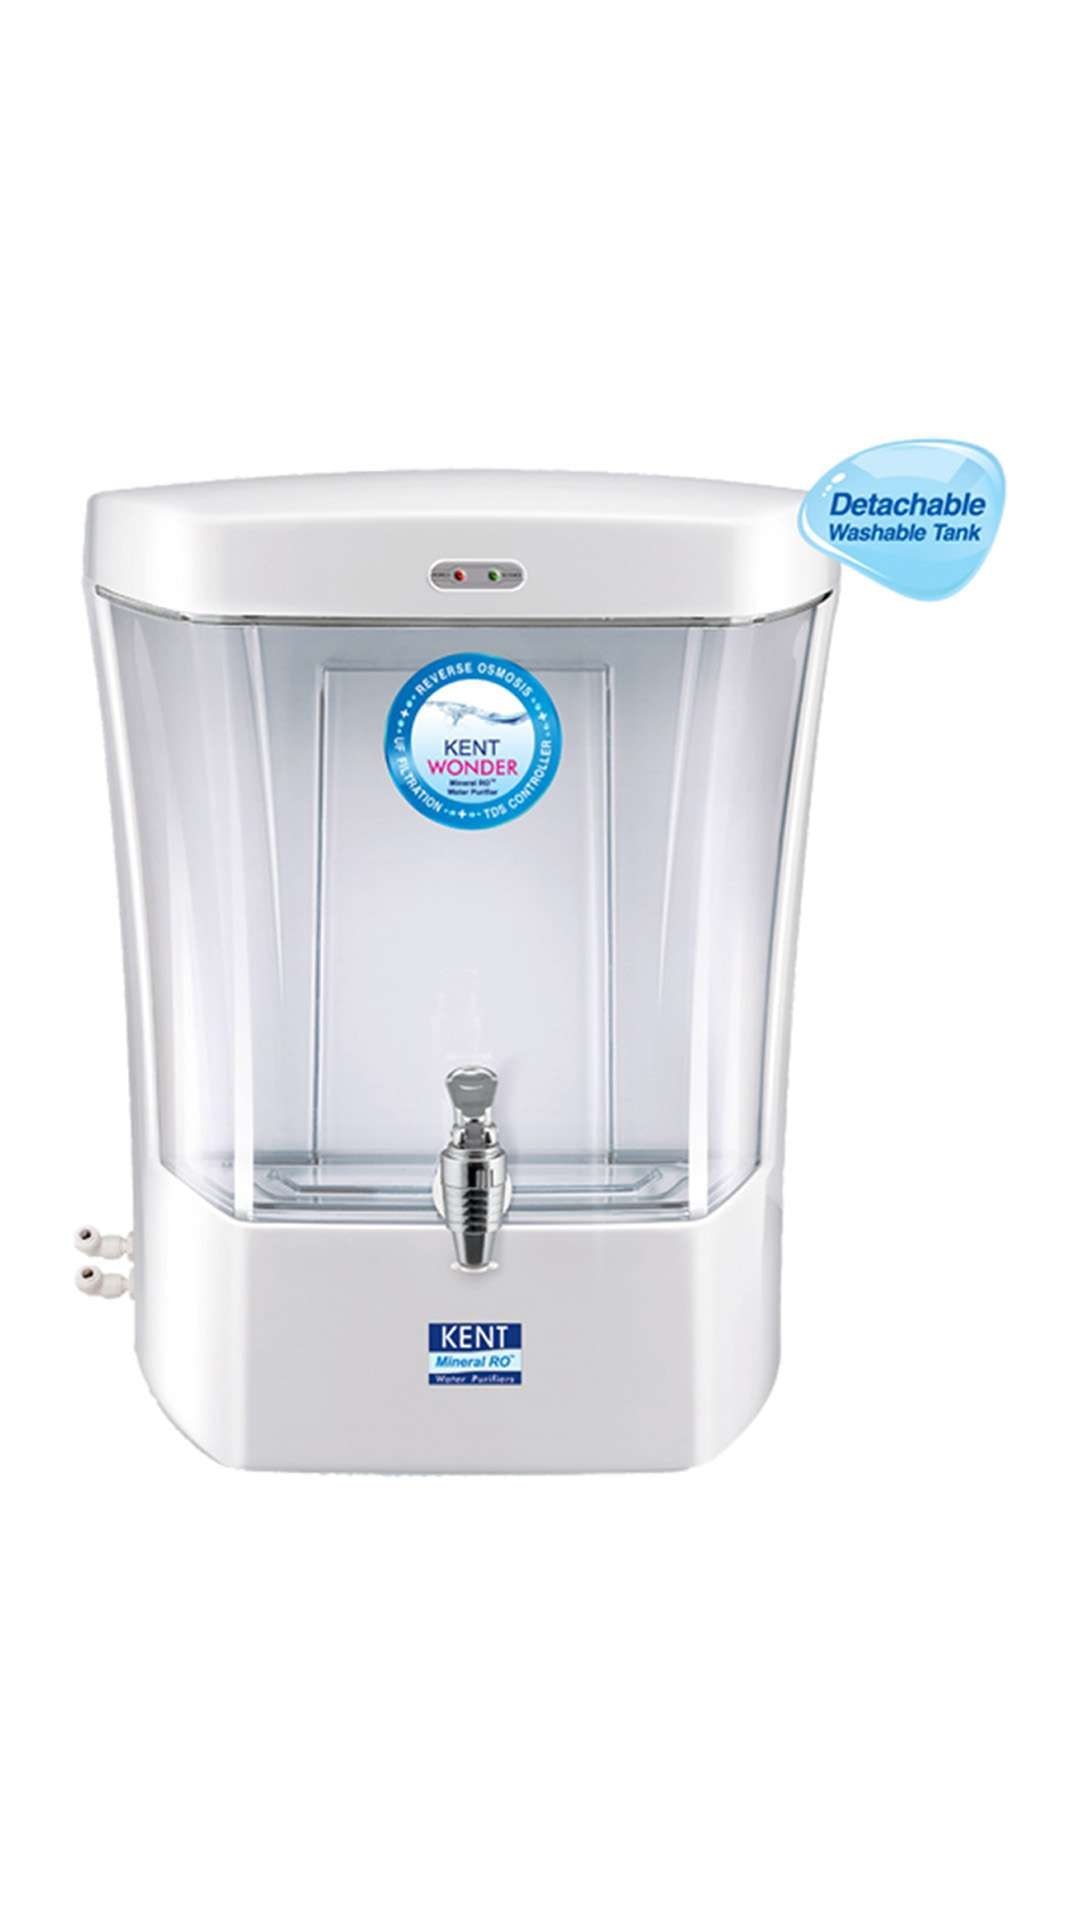 Kent Wonder 7 L RO + UF With TDS Controller Electric Water Purifier